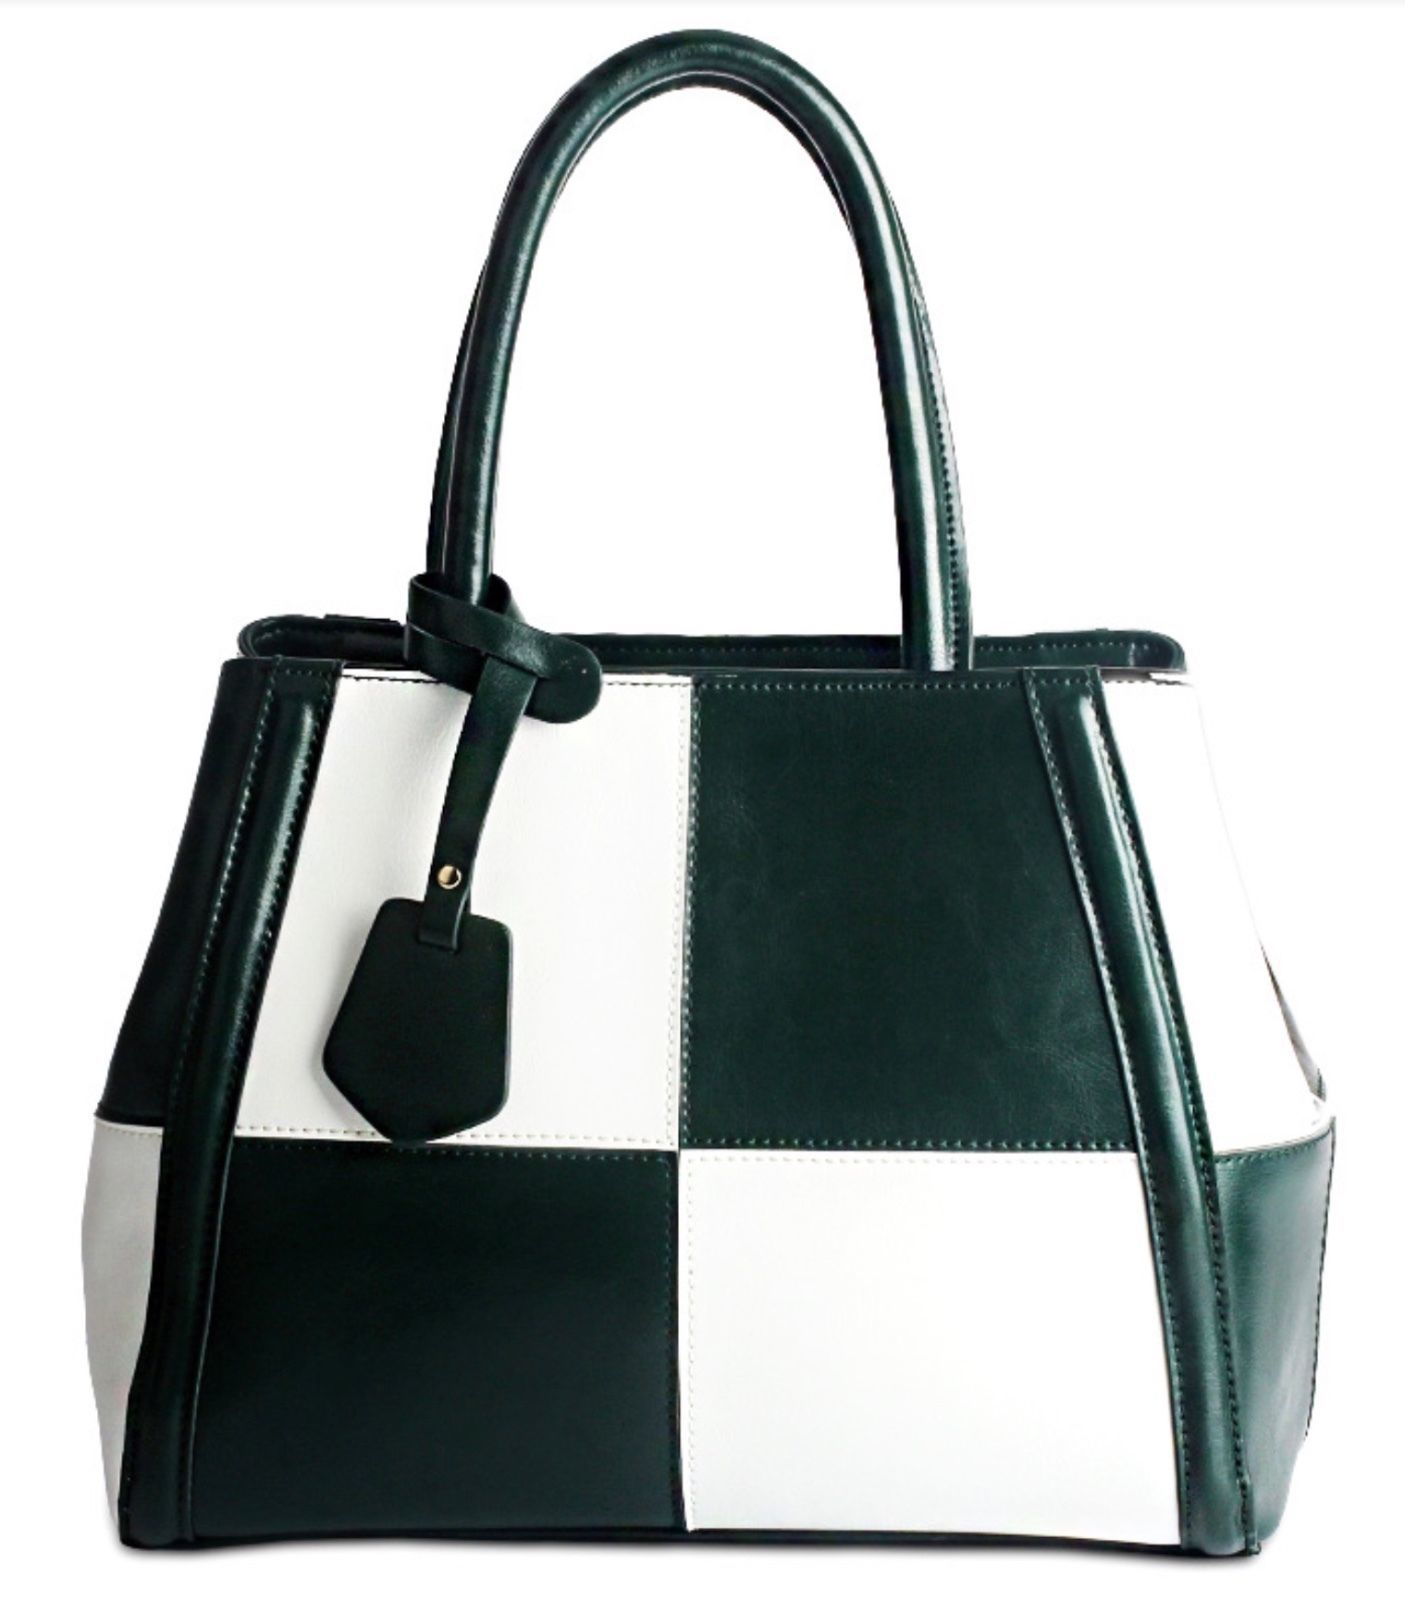 New Italian Leather Color Block Satchel Tote Handbag